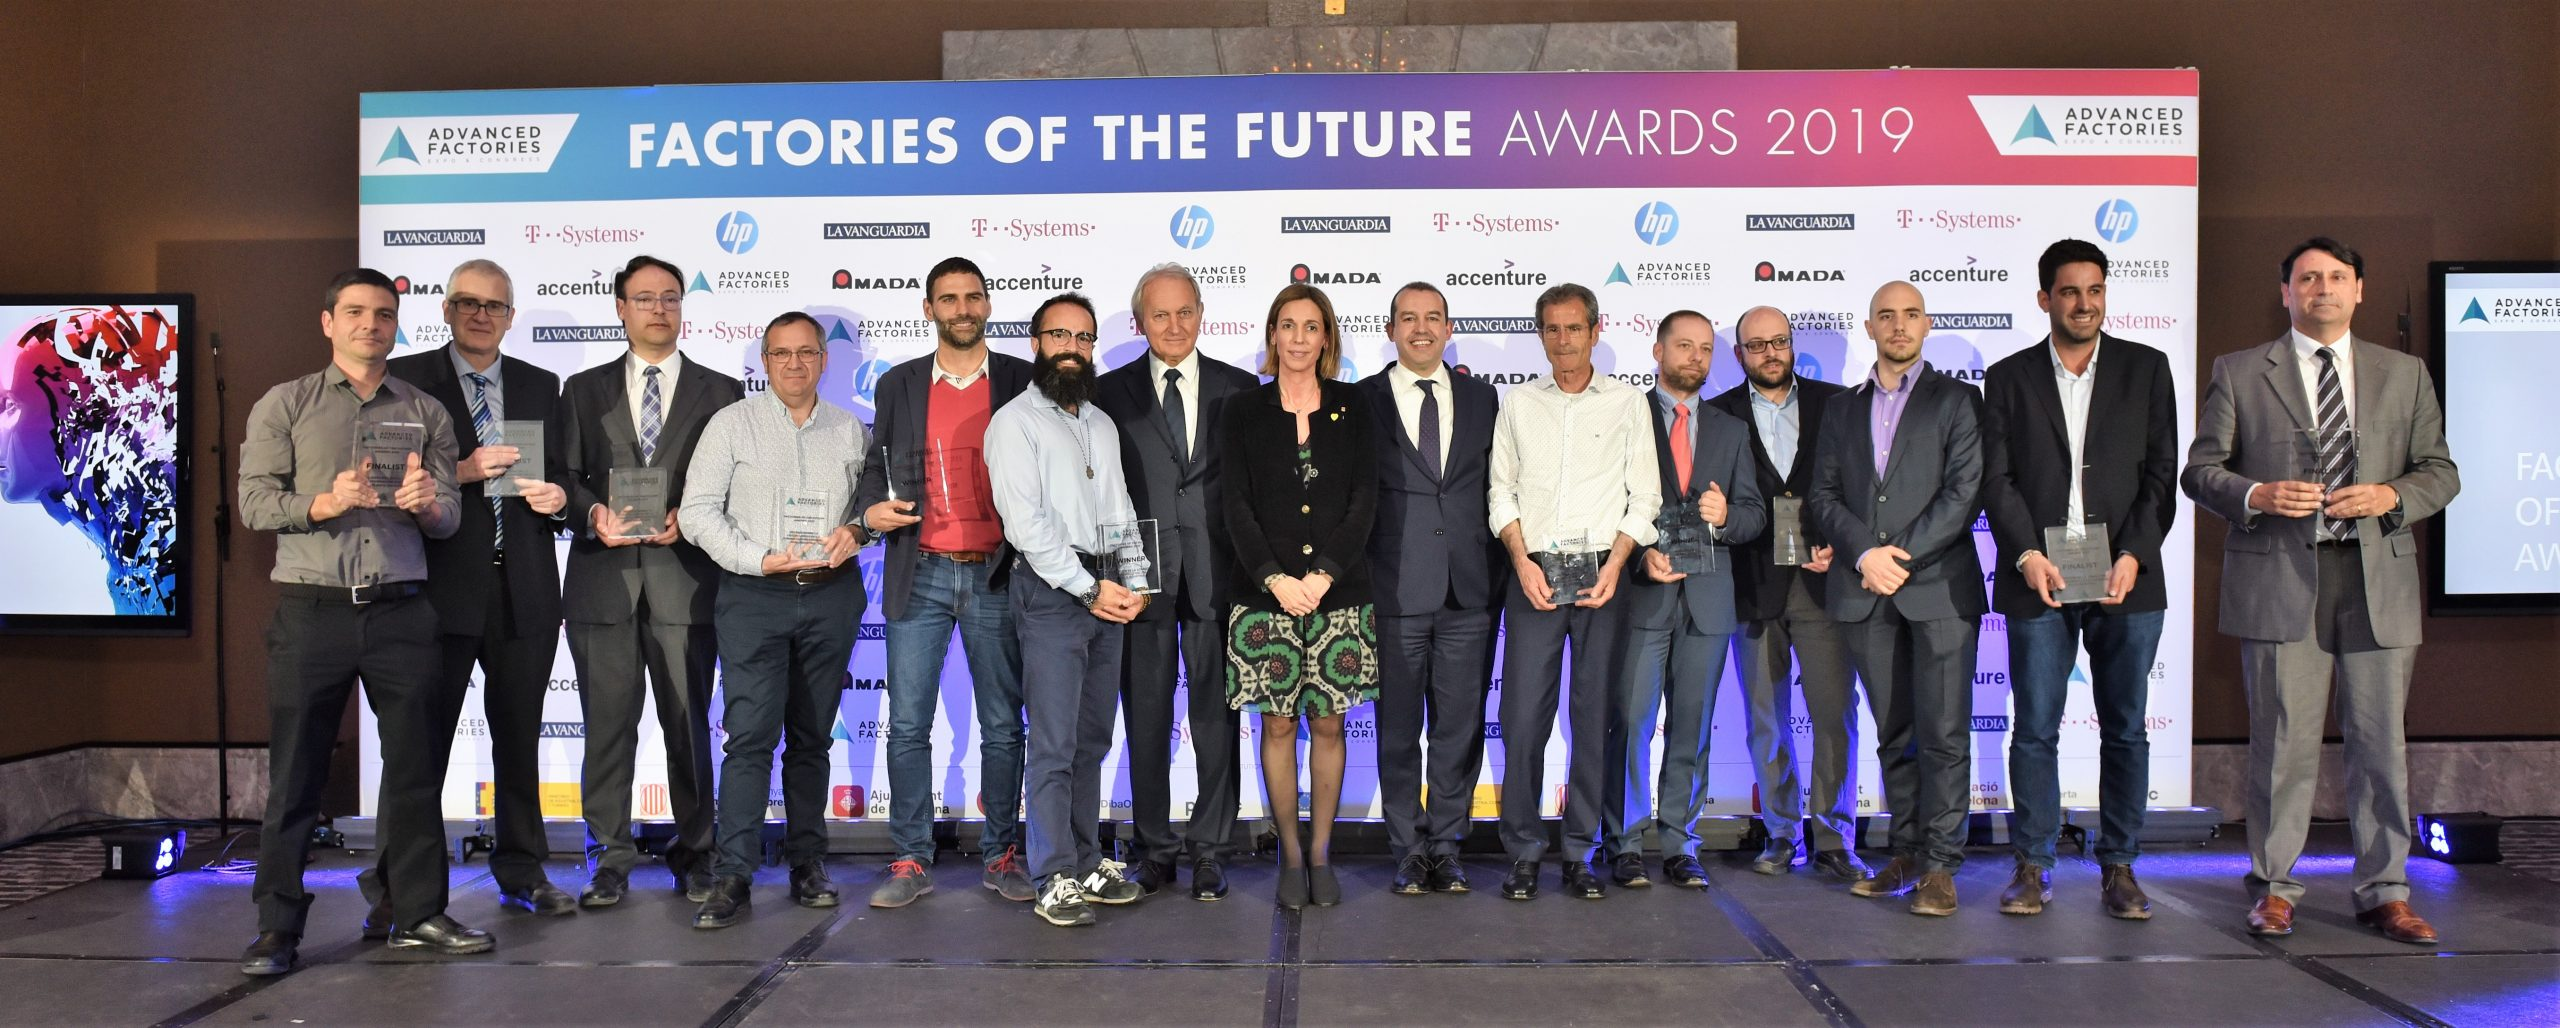 Inteligencia Artificial e industria 4.0, los grandes valores de los finalistas de los Factories of the Future Awards 2020